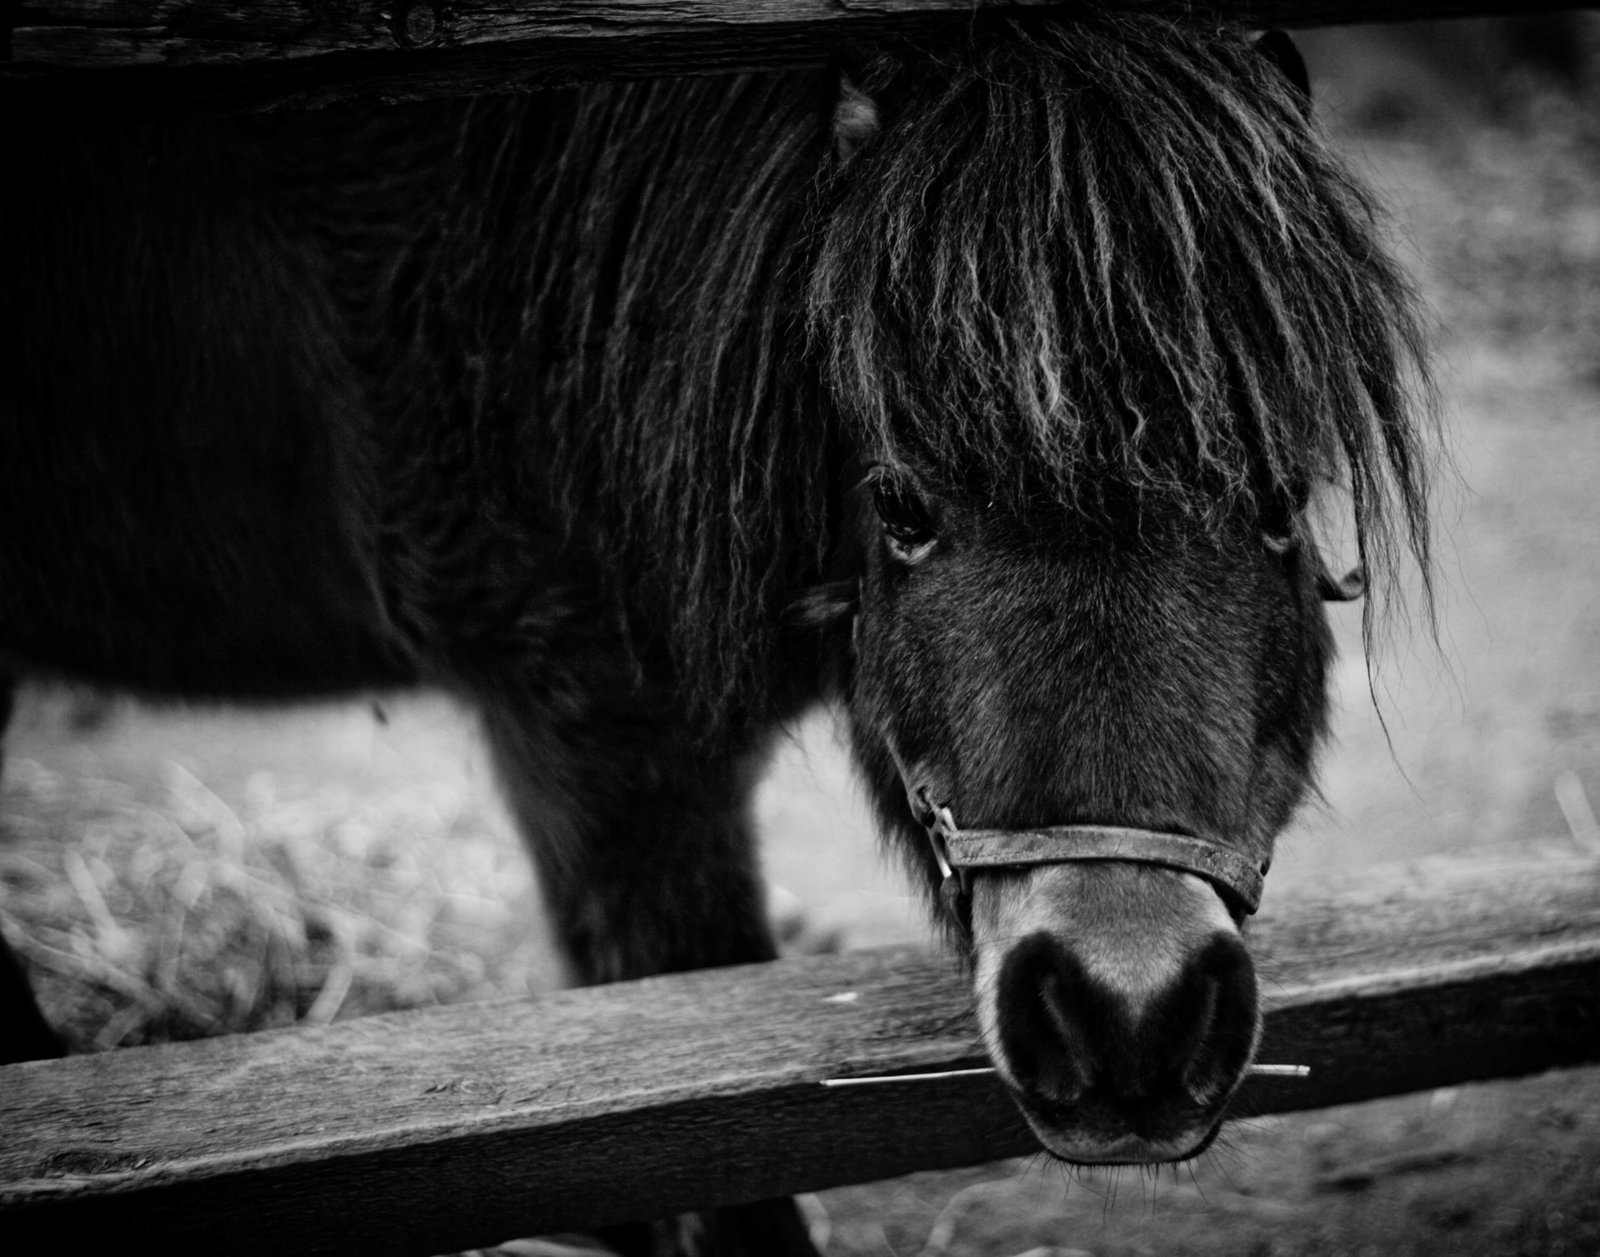 miniature-horse-pennsylvania-countryside-kate-timbers-photography-1129